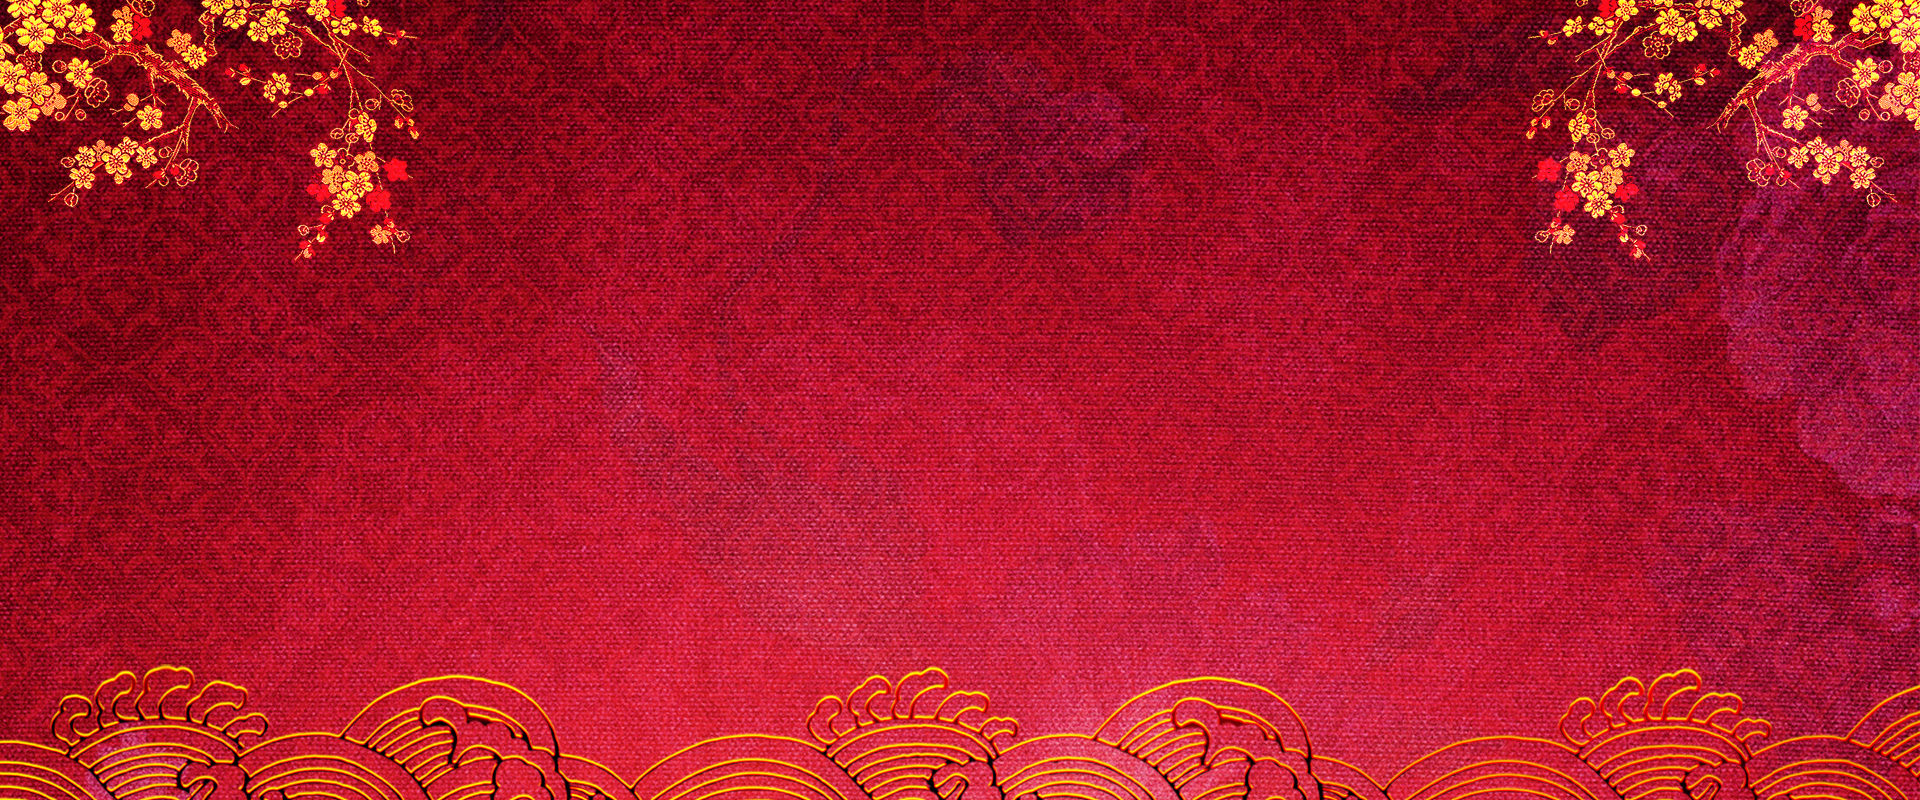 festival banner background  spring  clips  chinese